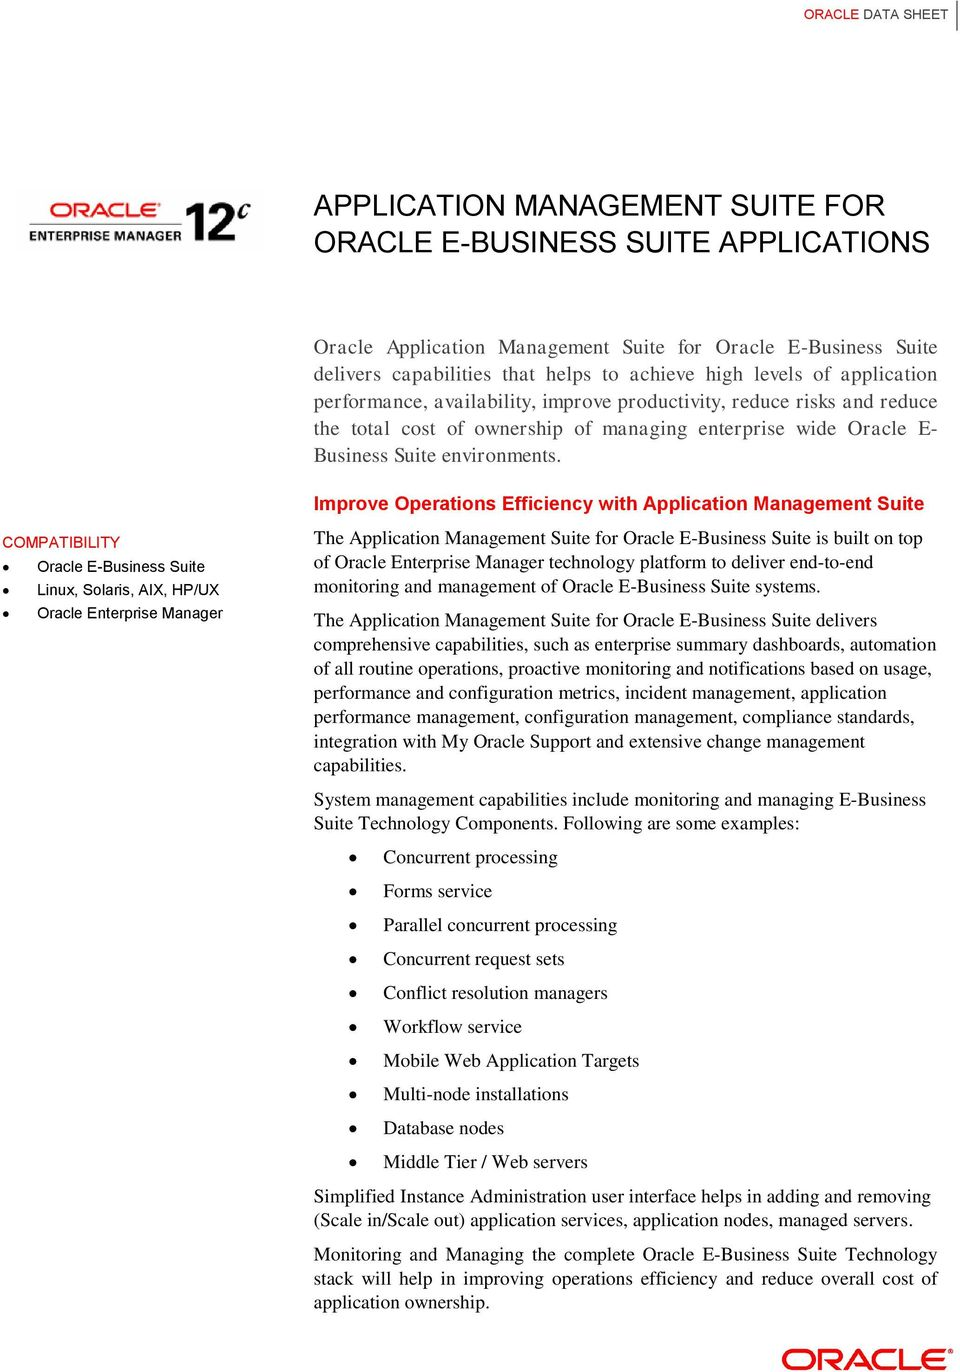 Improve Operations Efficiency with Application Management Suite COMPATIBILITY Oracle E-Business Suite Linux, Solaris, AIX, HP/UX Oracle Enterprise Manager The Application Management Suite for Oracle